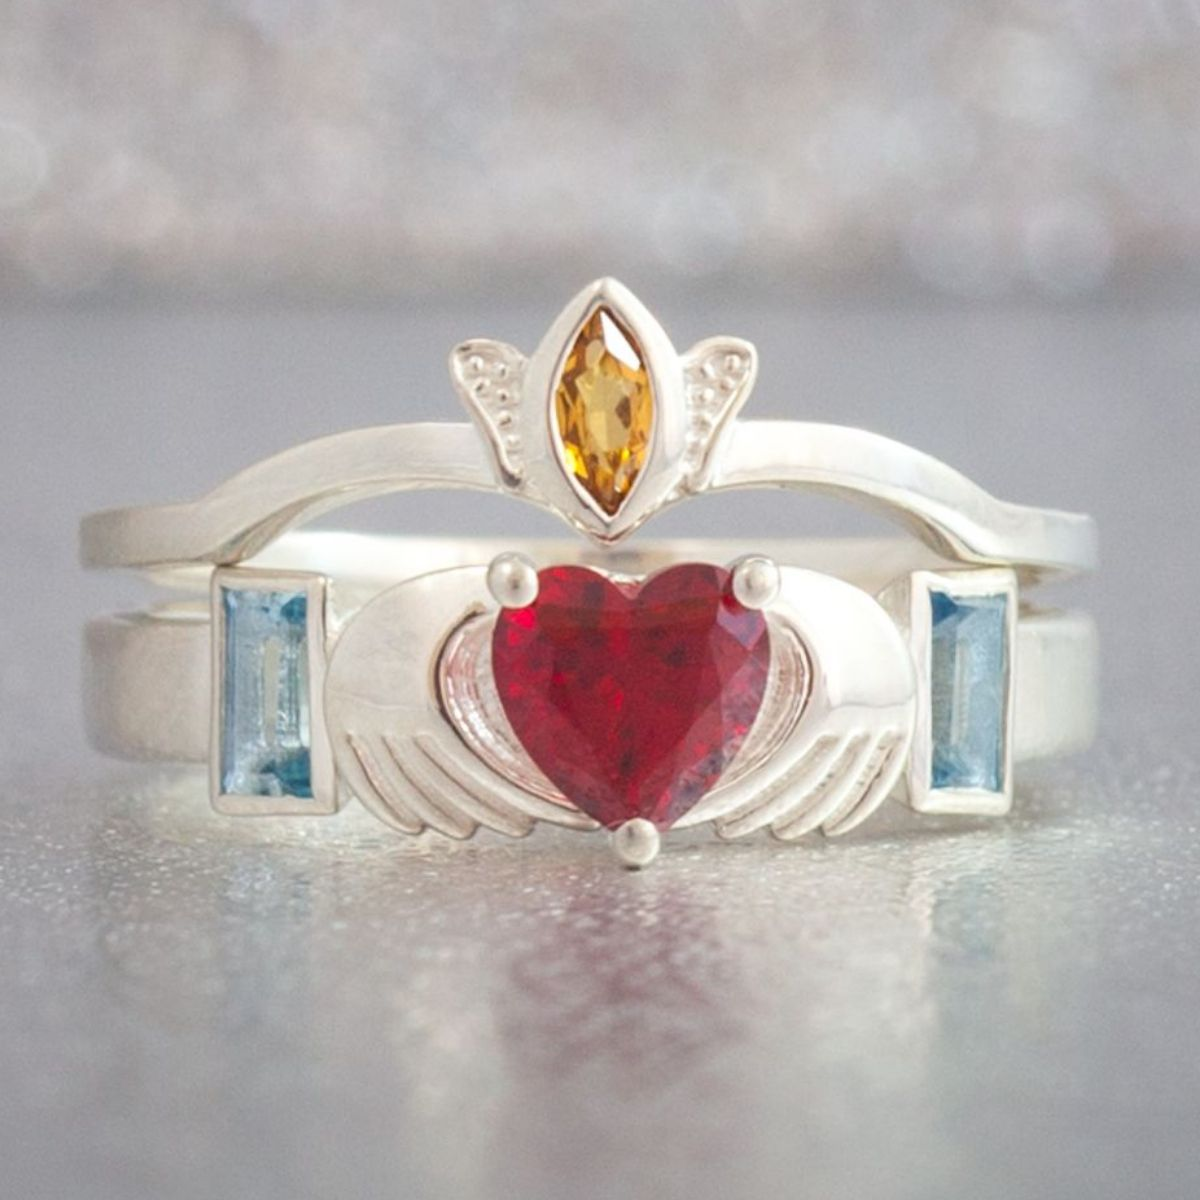 A Classic Claddagh Ring This One Features Heart Shaped Ruby Aquamarine Accents And Citrine In The Crown For Beautiful Play Of Colors: Modern Irish Wedding Rings At Websimilar.org